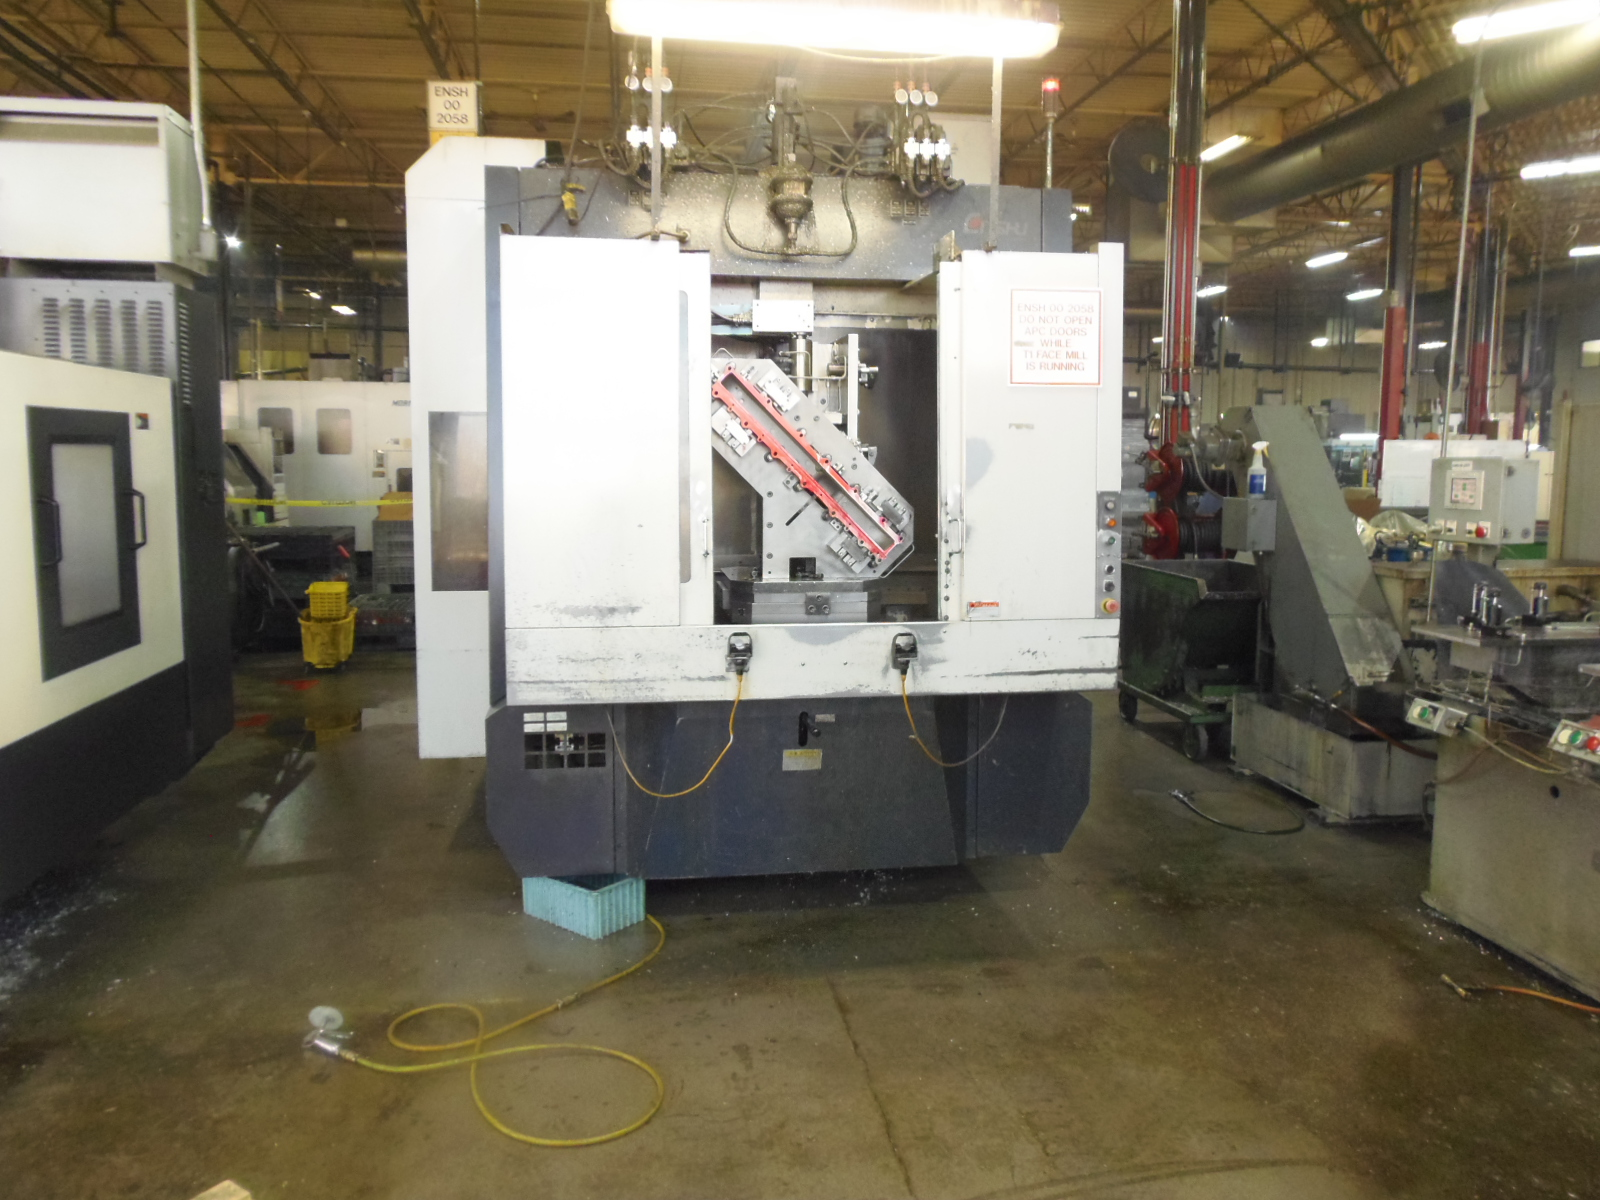 "ENSHU JE80S, 2006, 20"" PALLETS, TSC, 18iMB CONTROL, 31 X 31 X 31 TRAVELS, BT-40 TAPER, 15,000 RPM, HYD. FIXTURE INTERFACE"